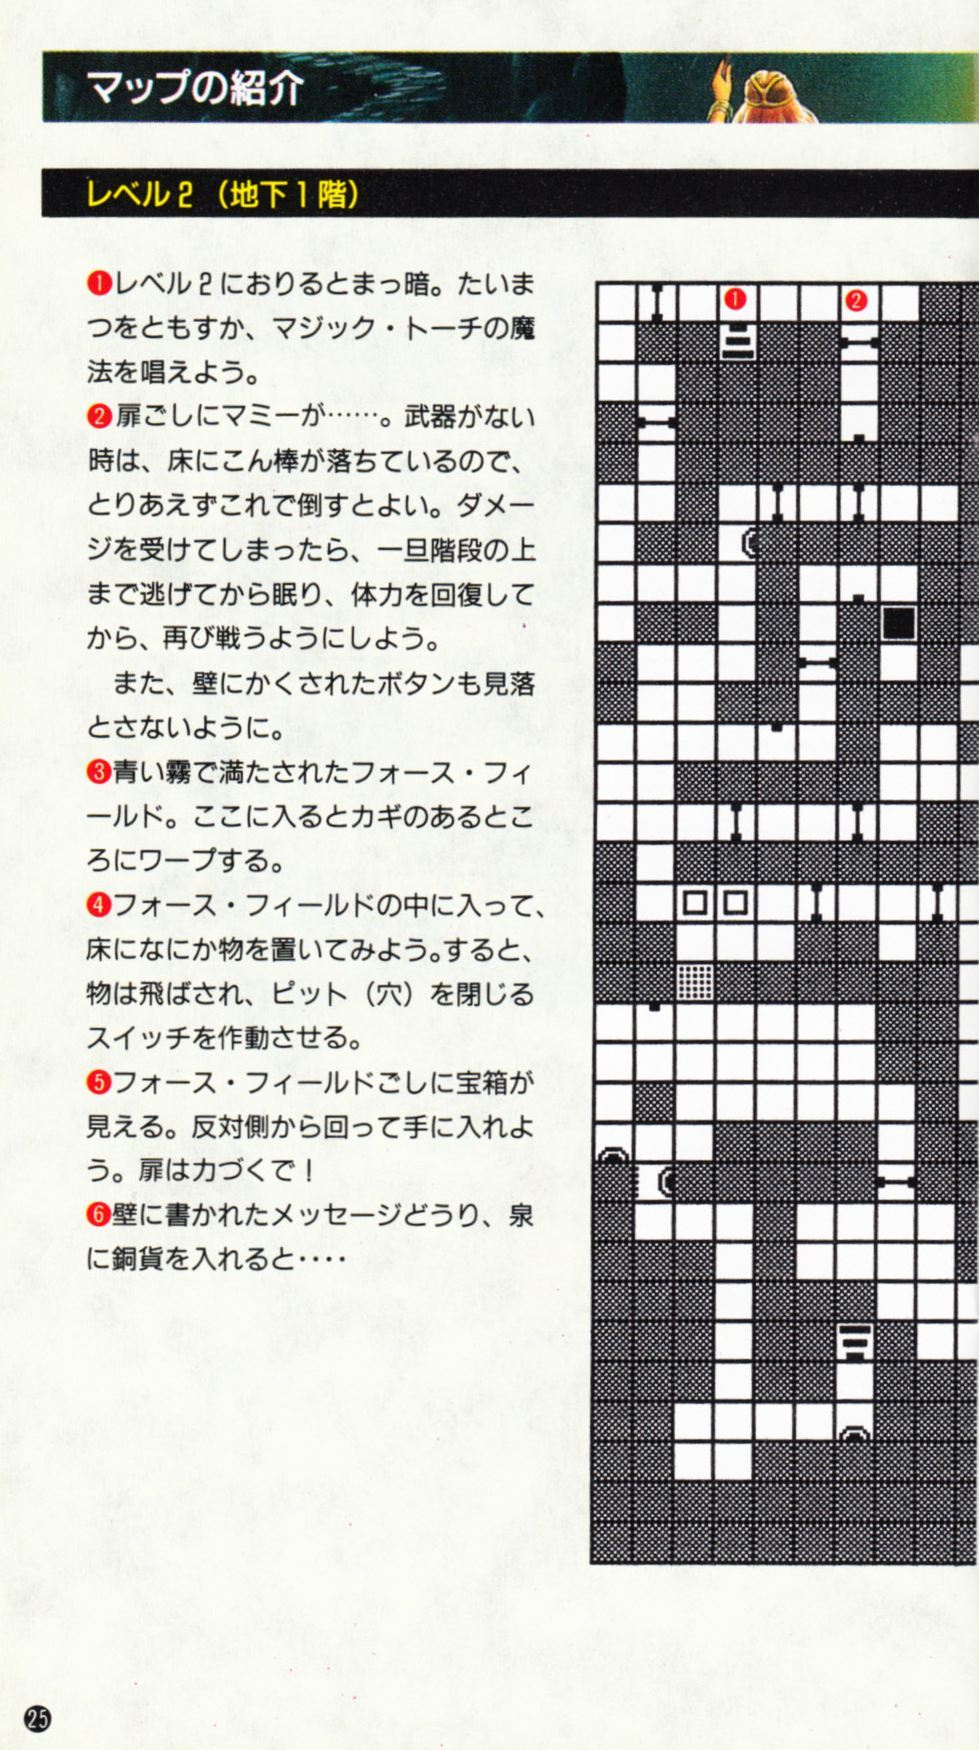 Game - Dungeon Master - JP - Super Famicom - Manual - Page 028 - Scan